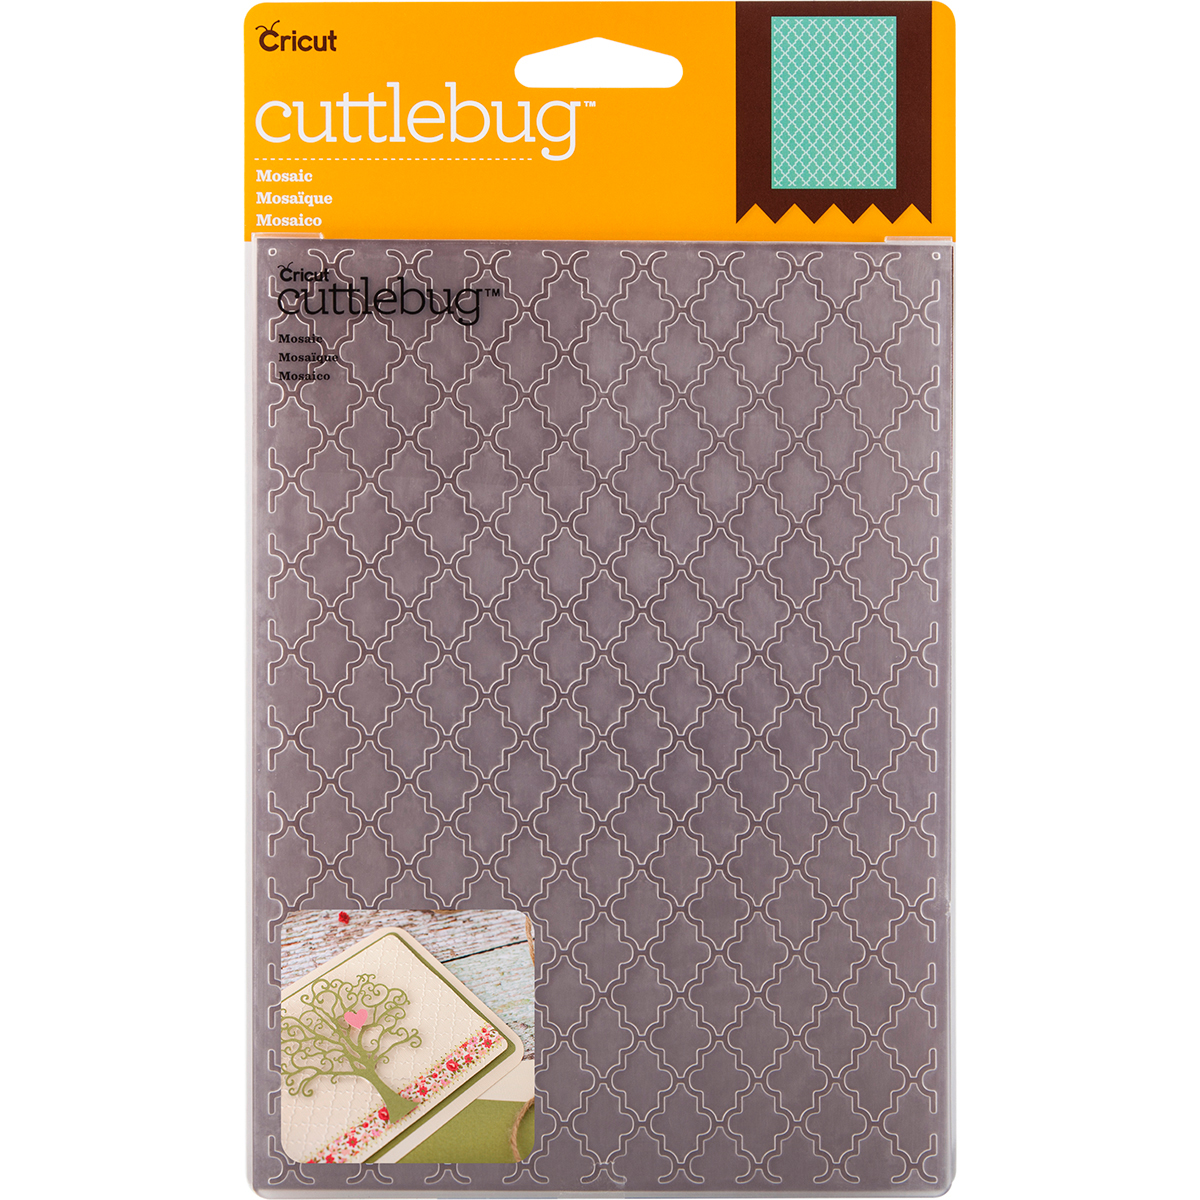 "Cuttlebug 5"" x 7"" Embossing Folder, Mosaic"